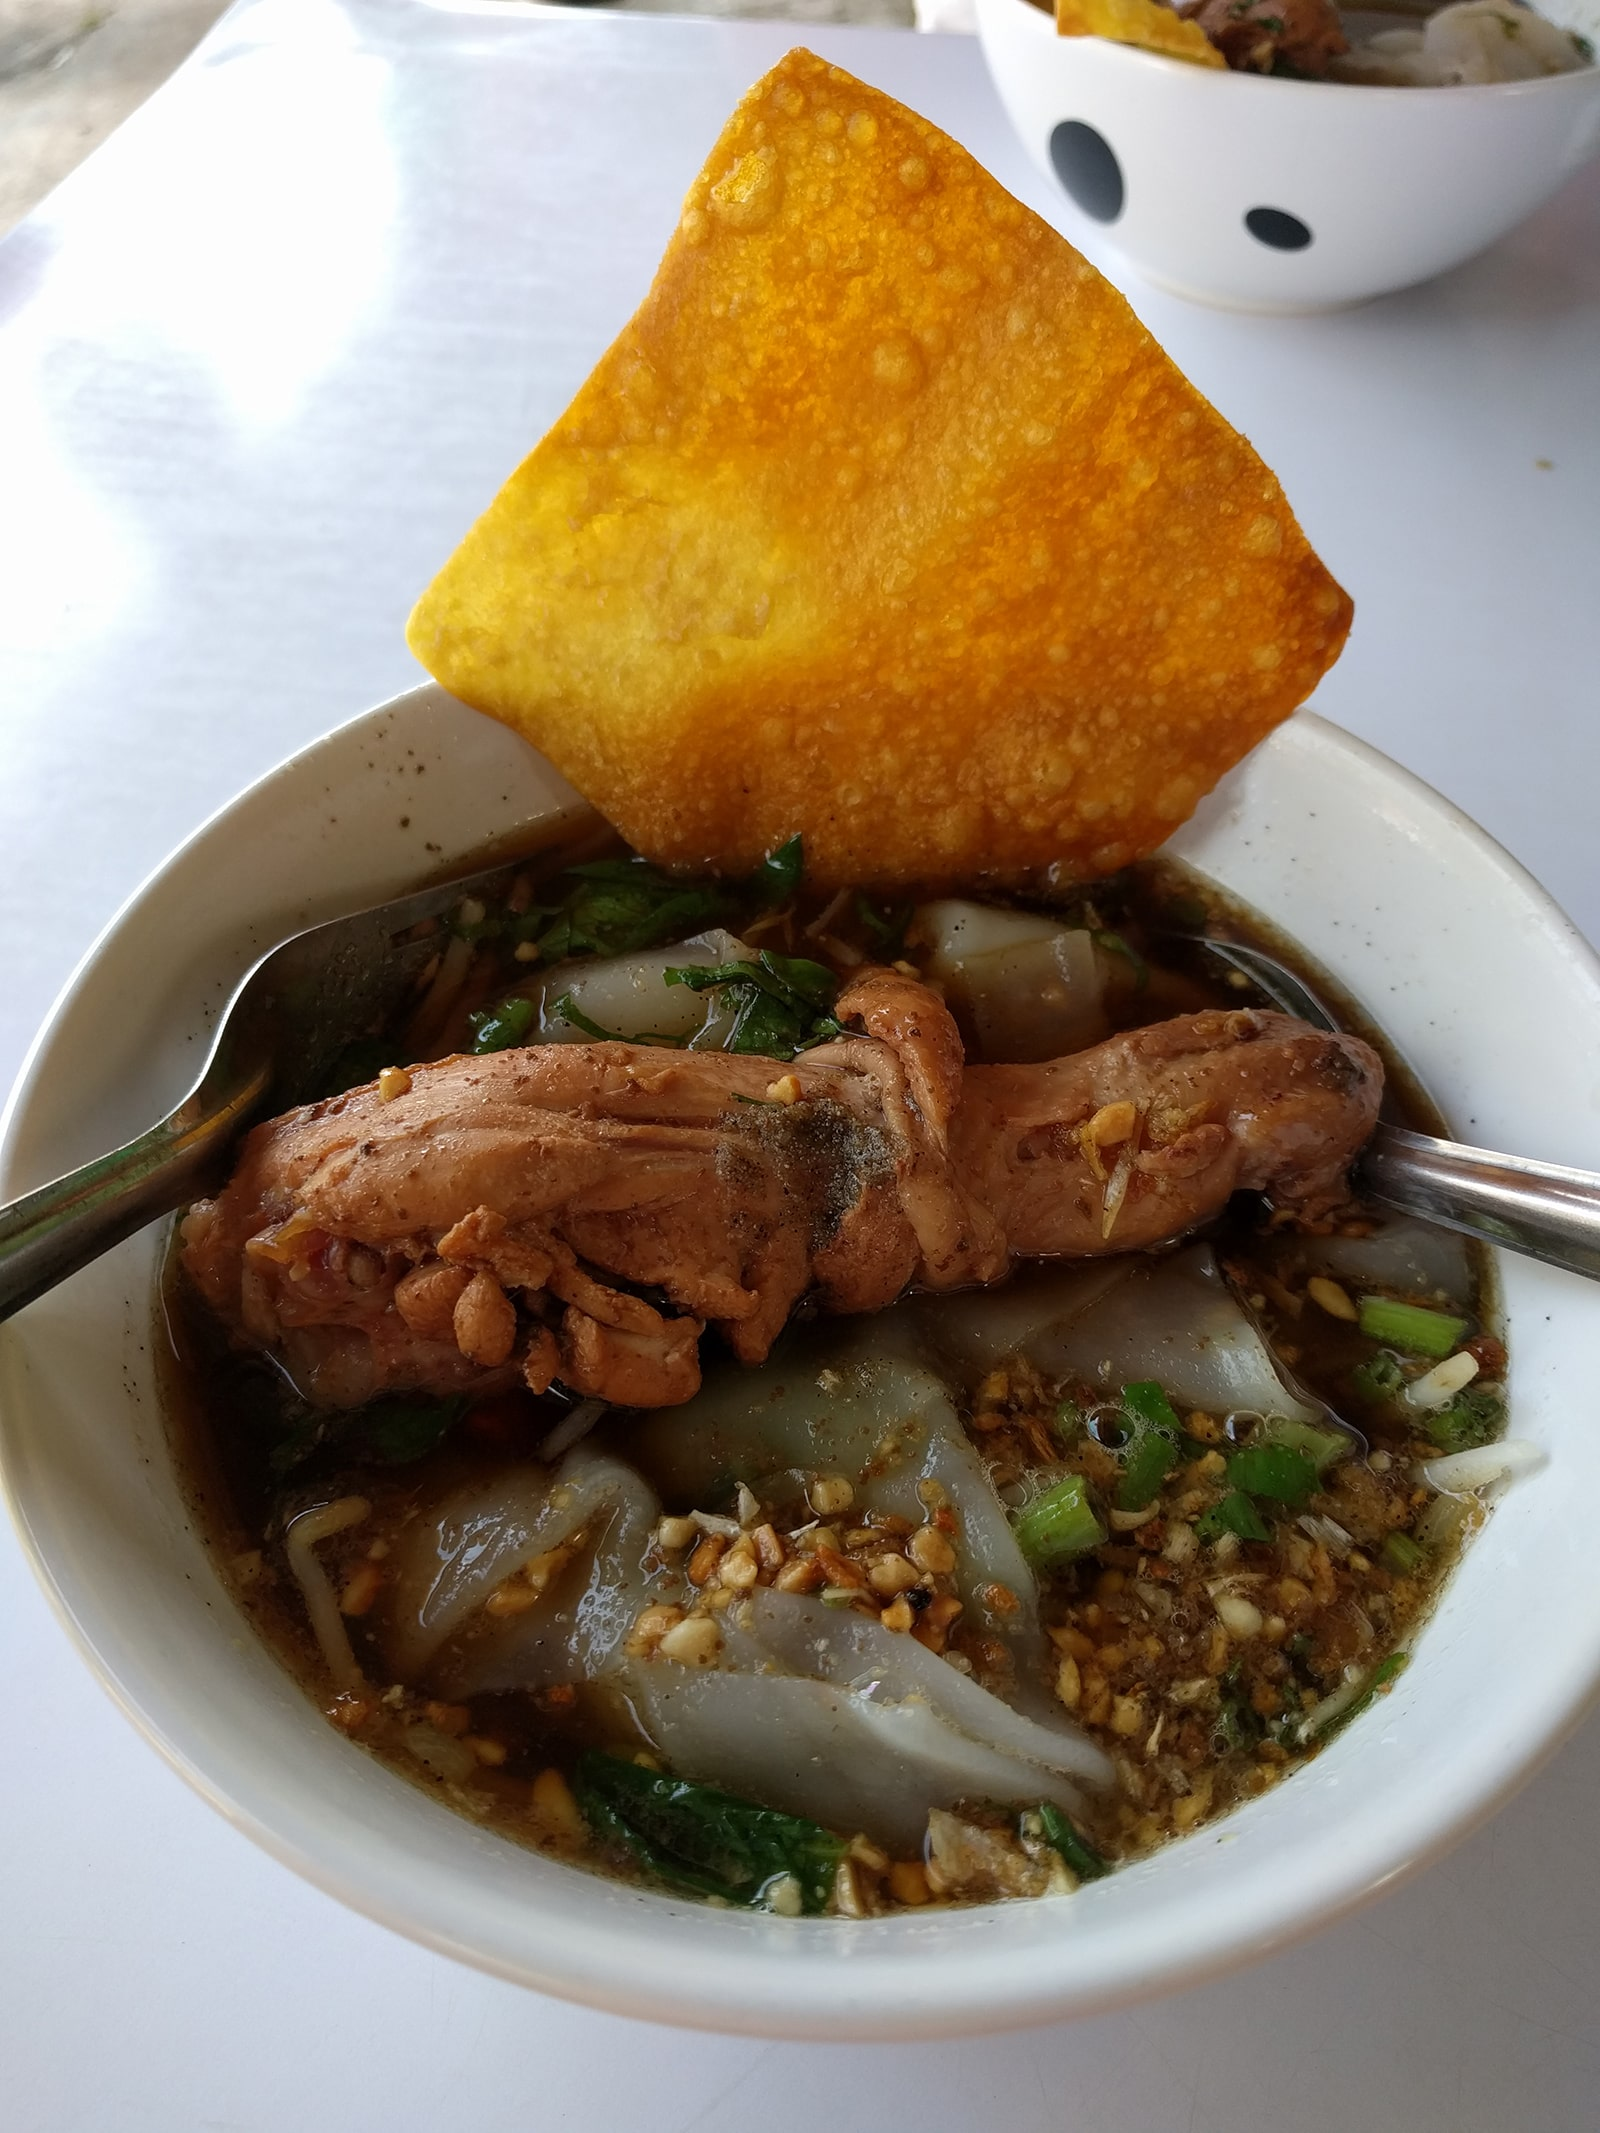 The chicken soup of the green restaurant on the island of Koh Yao Yai